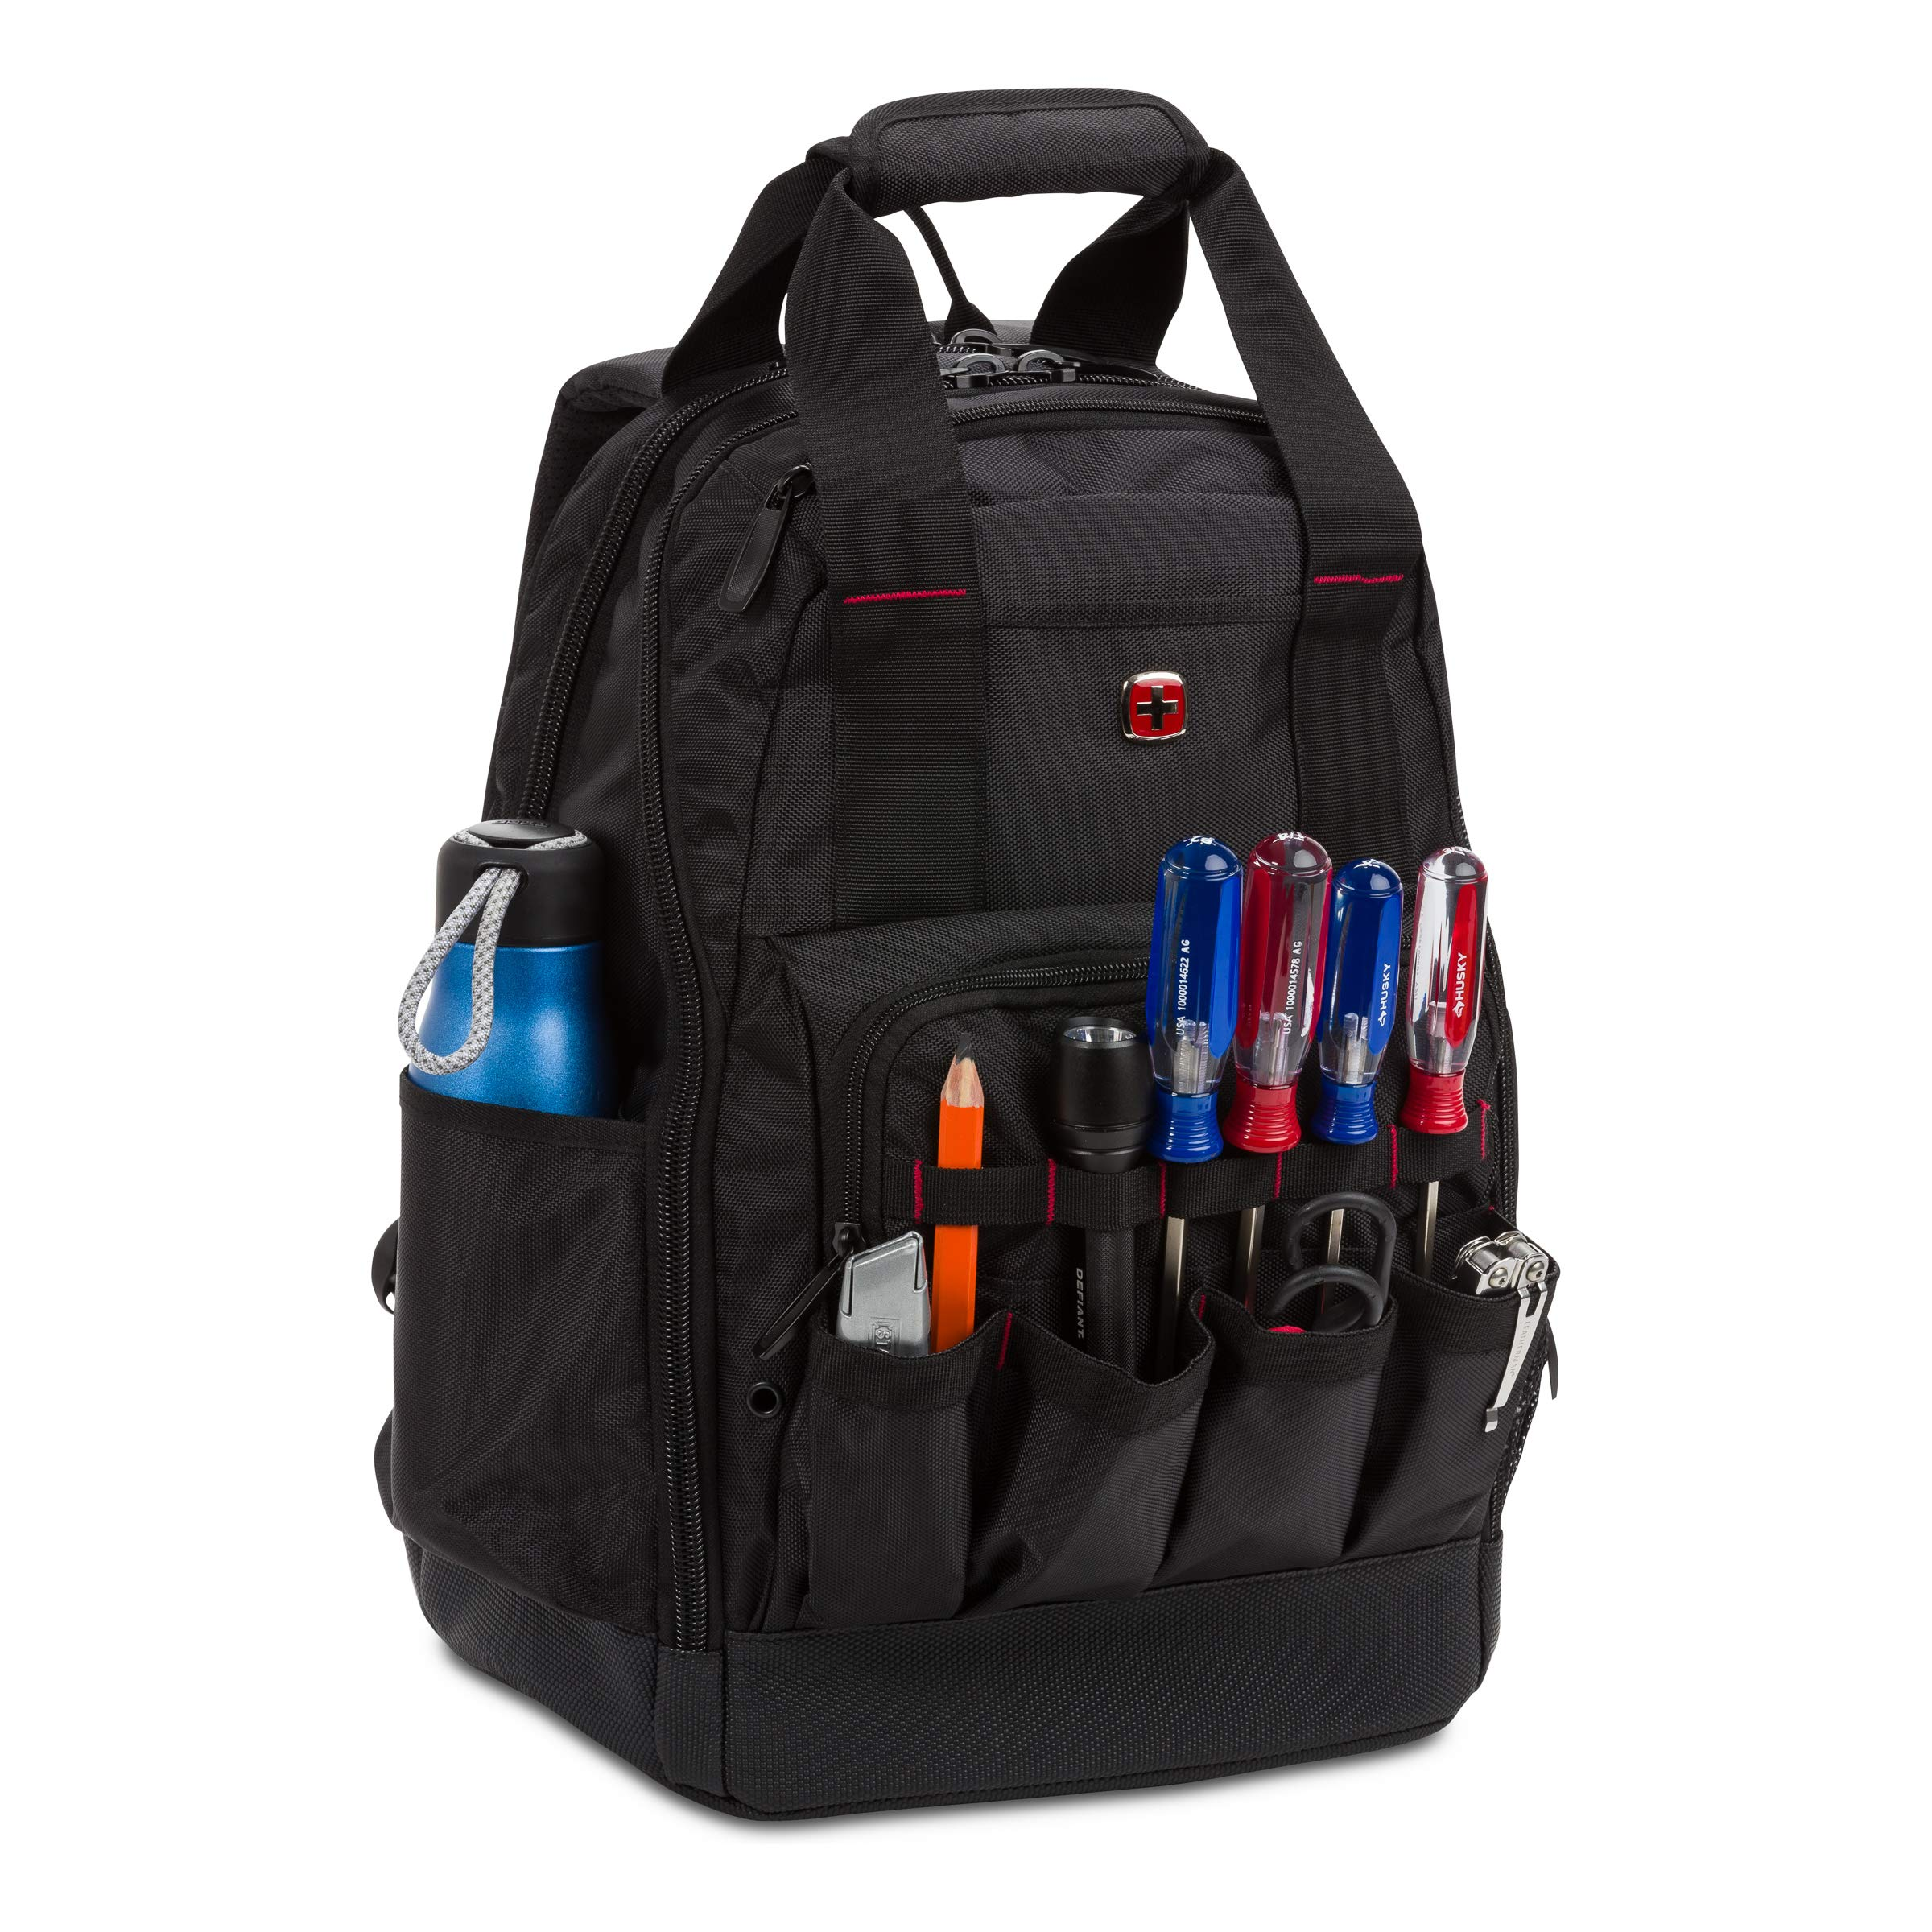 SWISSGEAR 2767 Large Durable Work Pack Tool Backpack With Padded Laptop Compartment | Tool Storage, Part Organization, Wet/Dry Pocket - Black by SwissGear (Image #7)